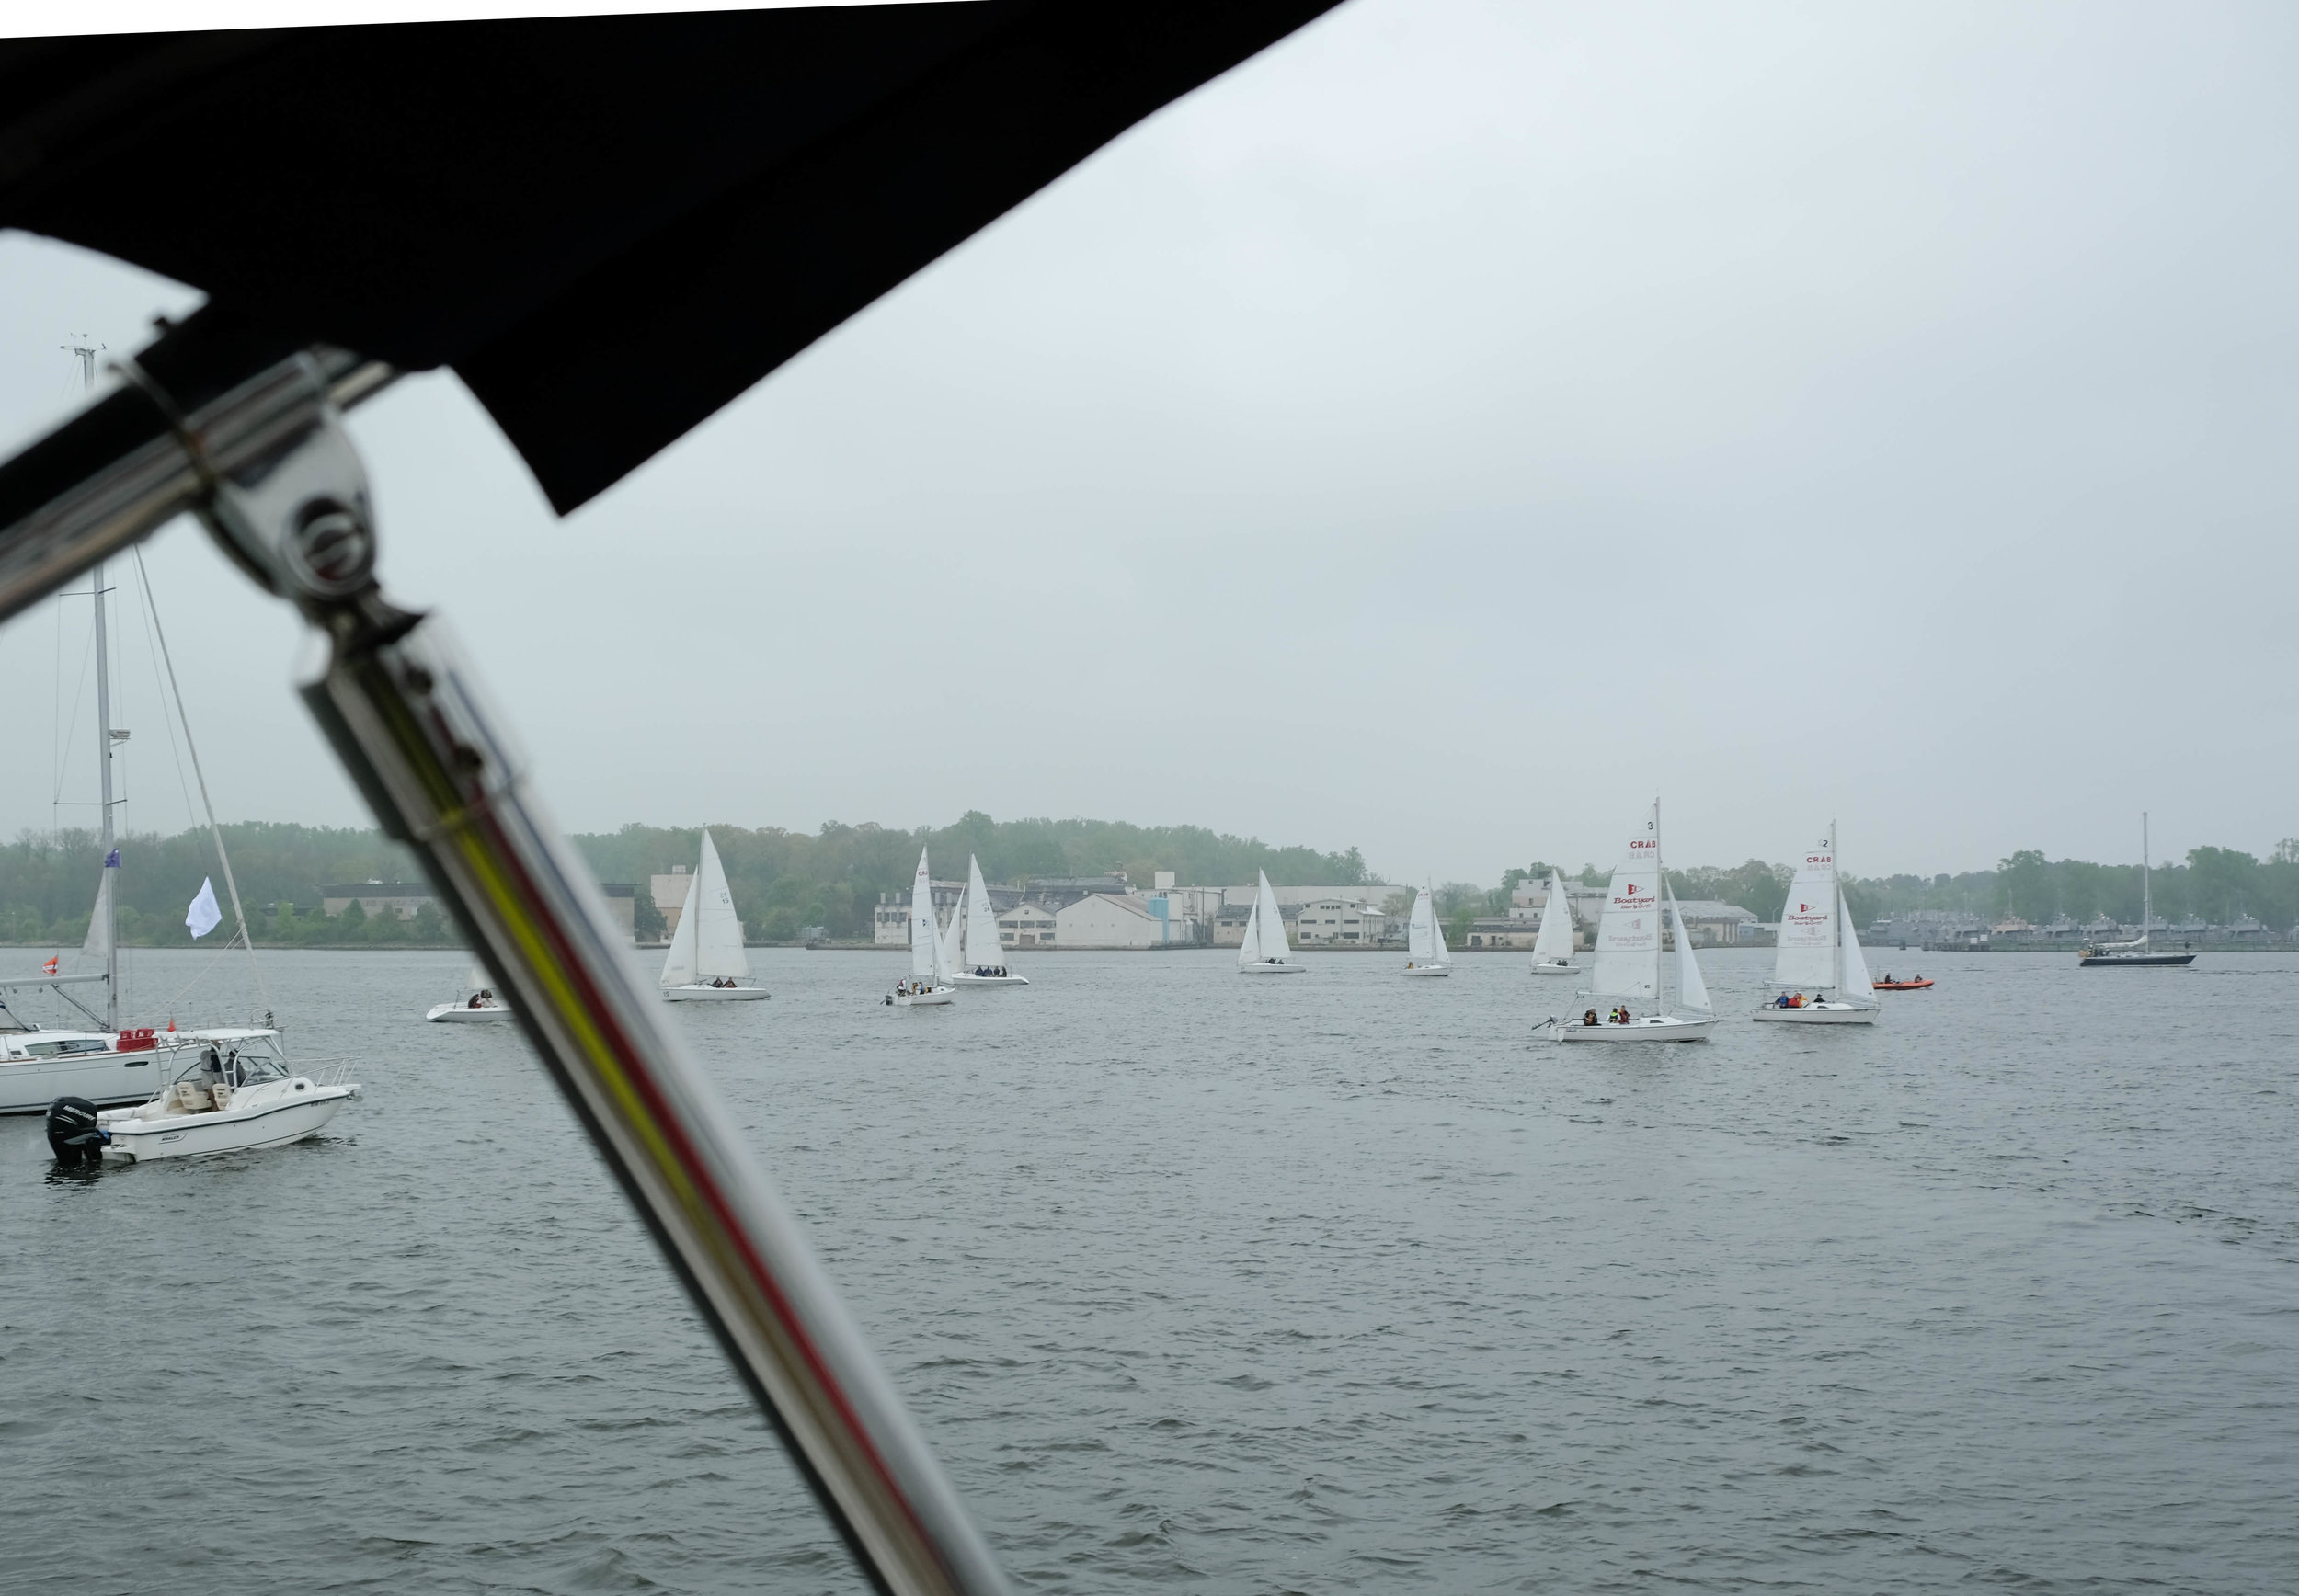 Not a bright sunny day, but the slight drizzle doesn't impact the fun everyone is having, and the midshipmen are honored to be sharing their knowledge of sailing with those who have been on active duty and given more than most in the service to their country.